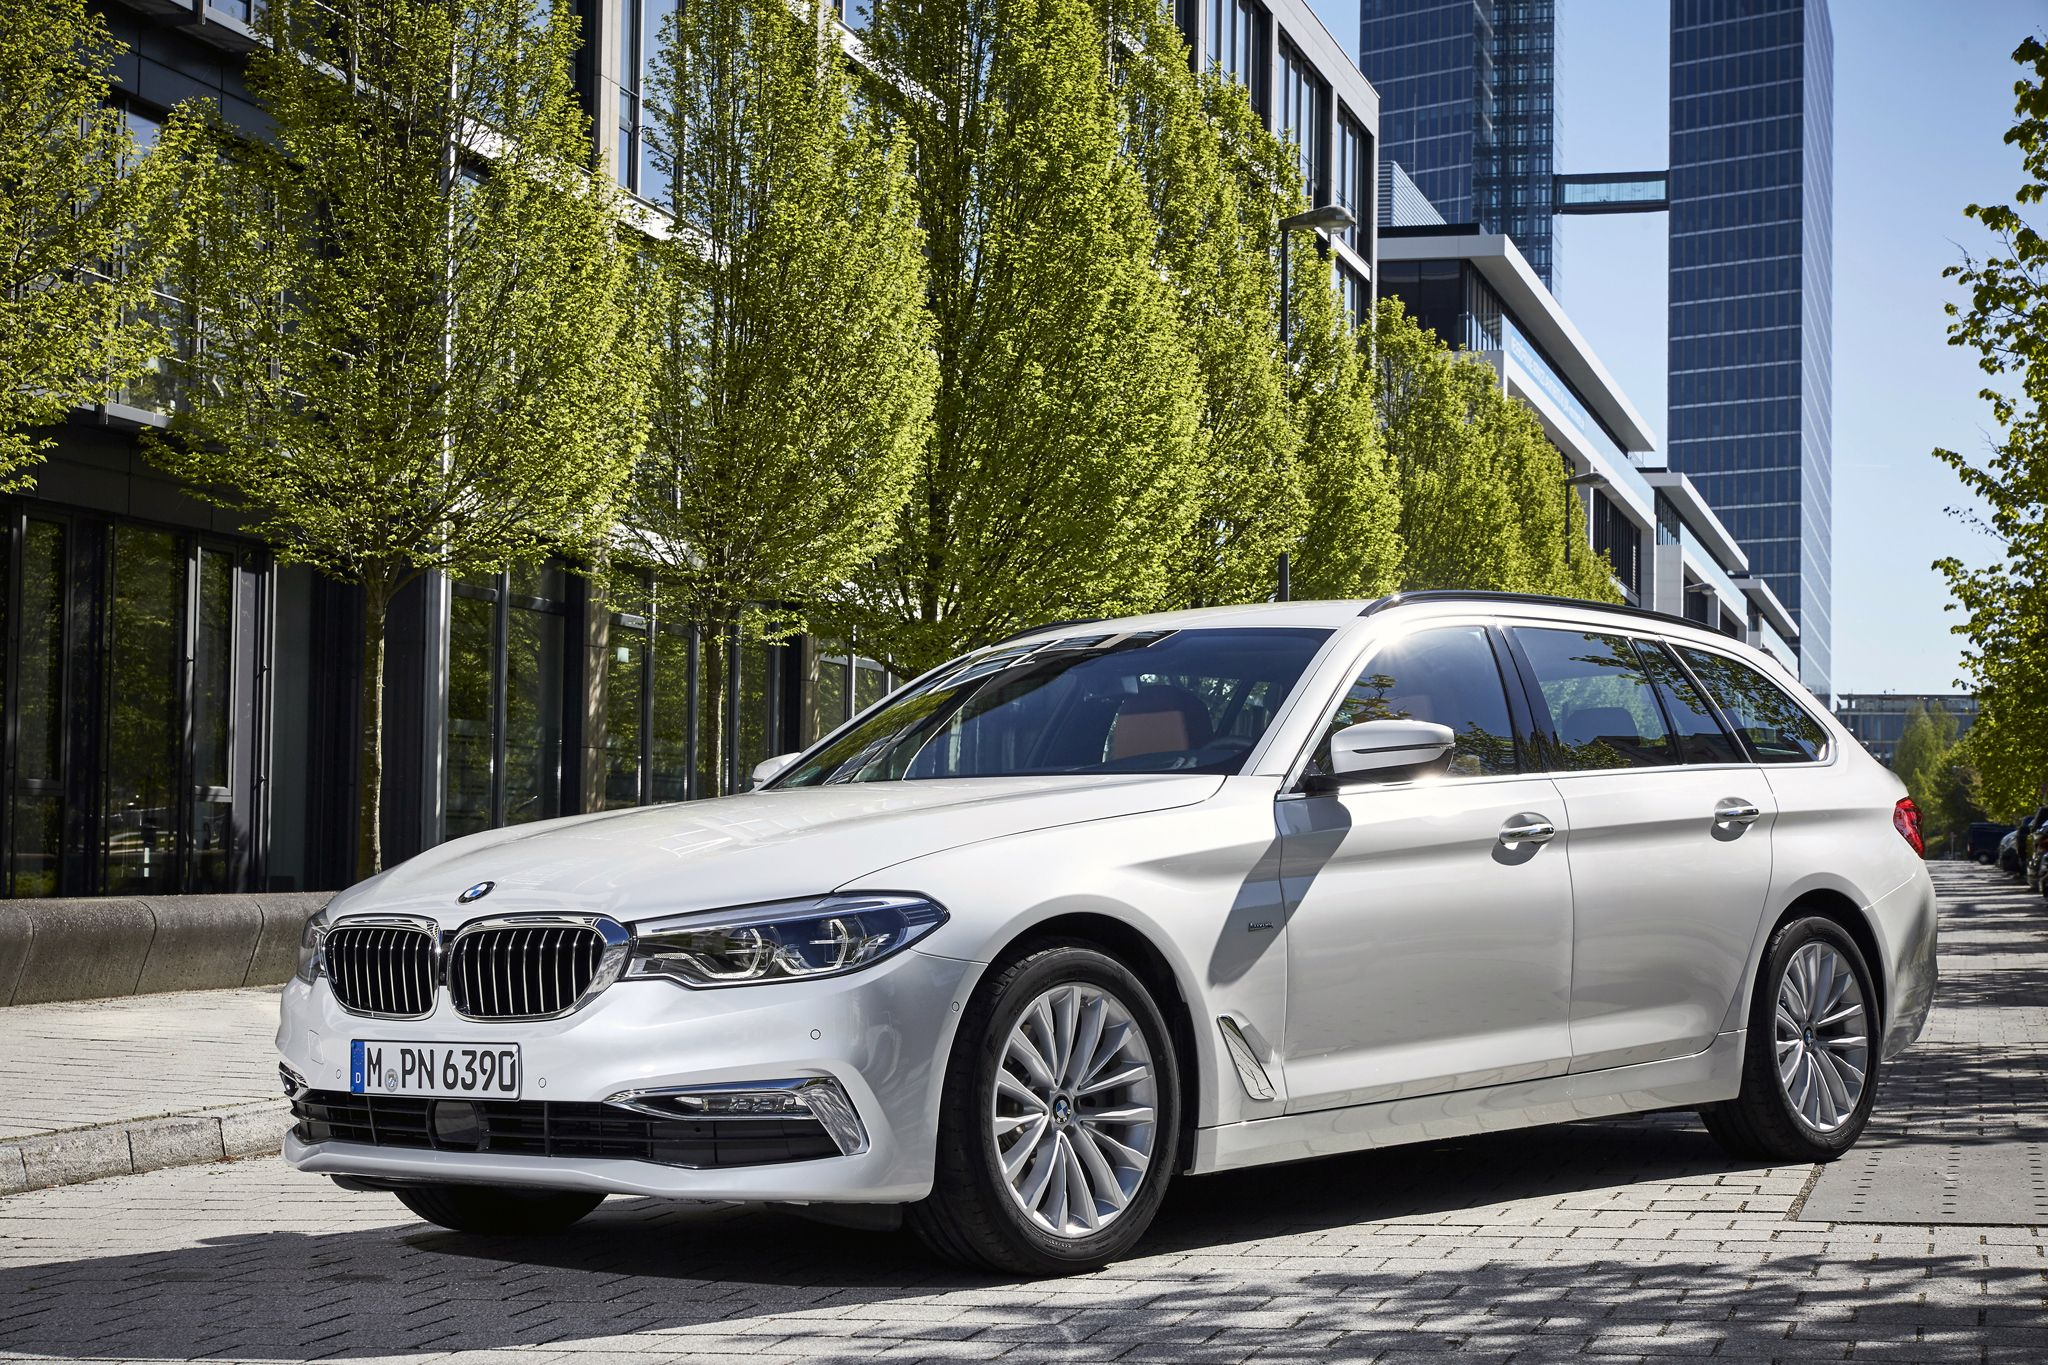 Pin By Bmw Life On Bmw Touring In 2020 Bmw Bmw Touring Touring